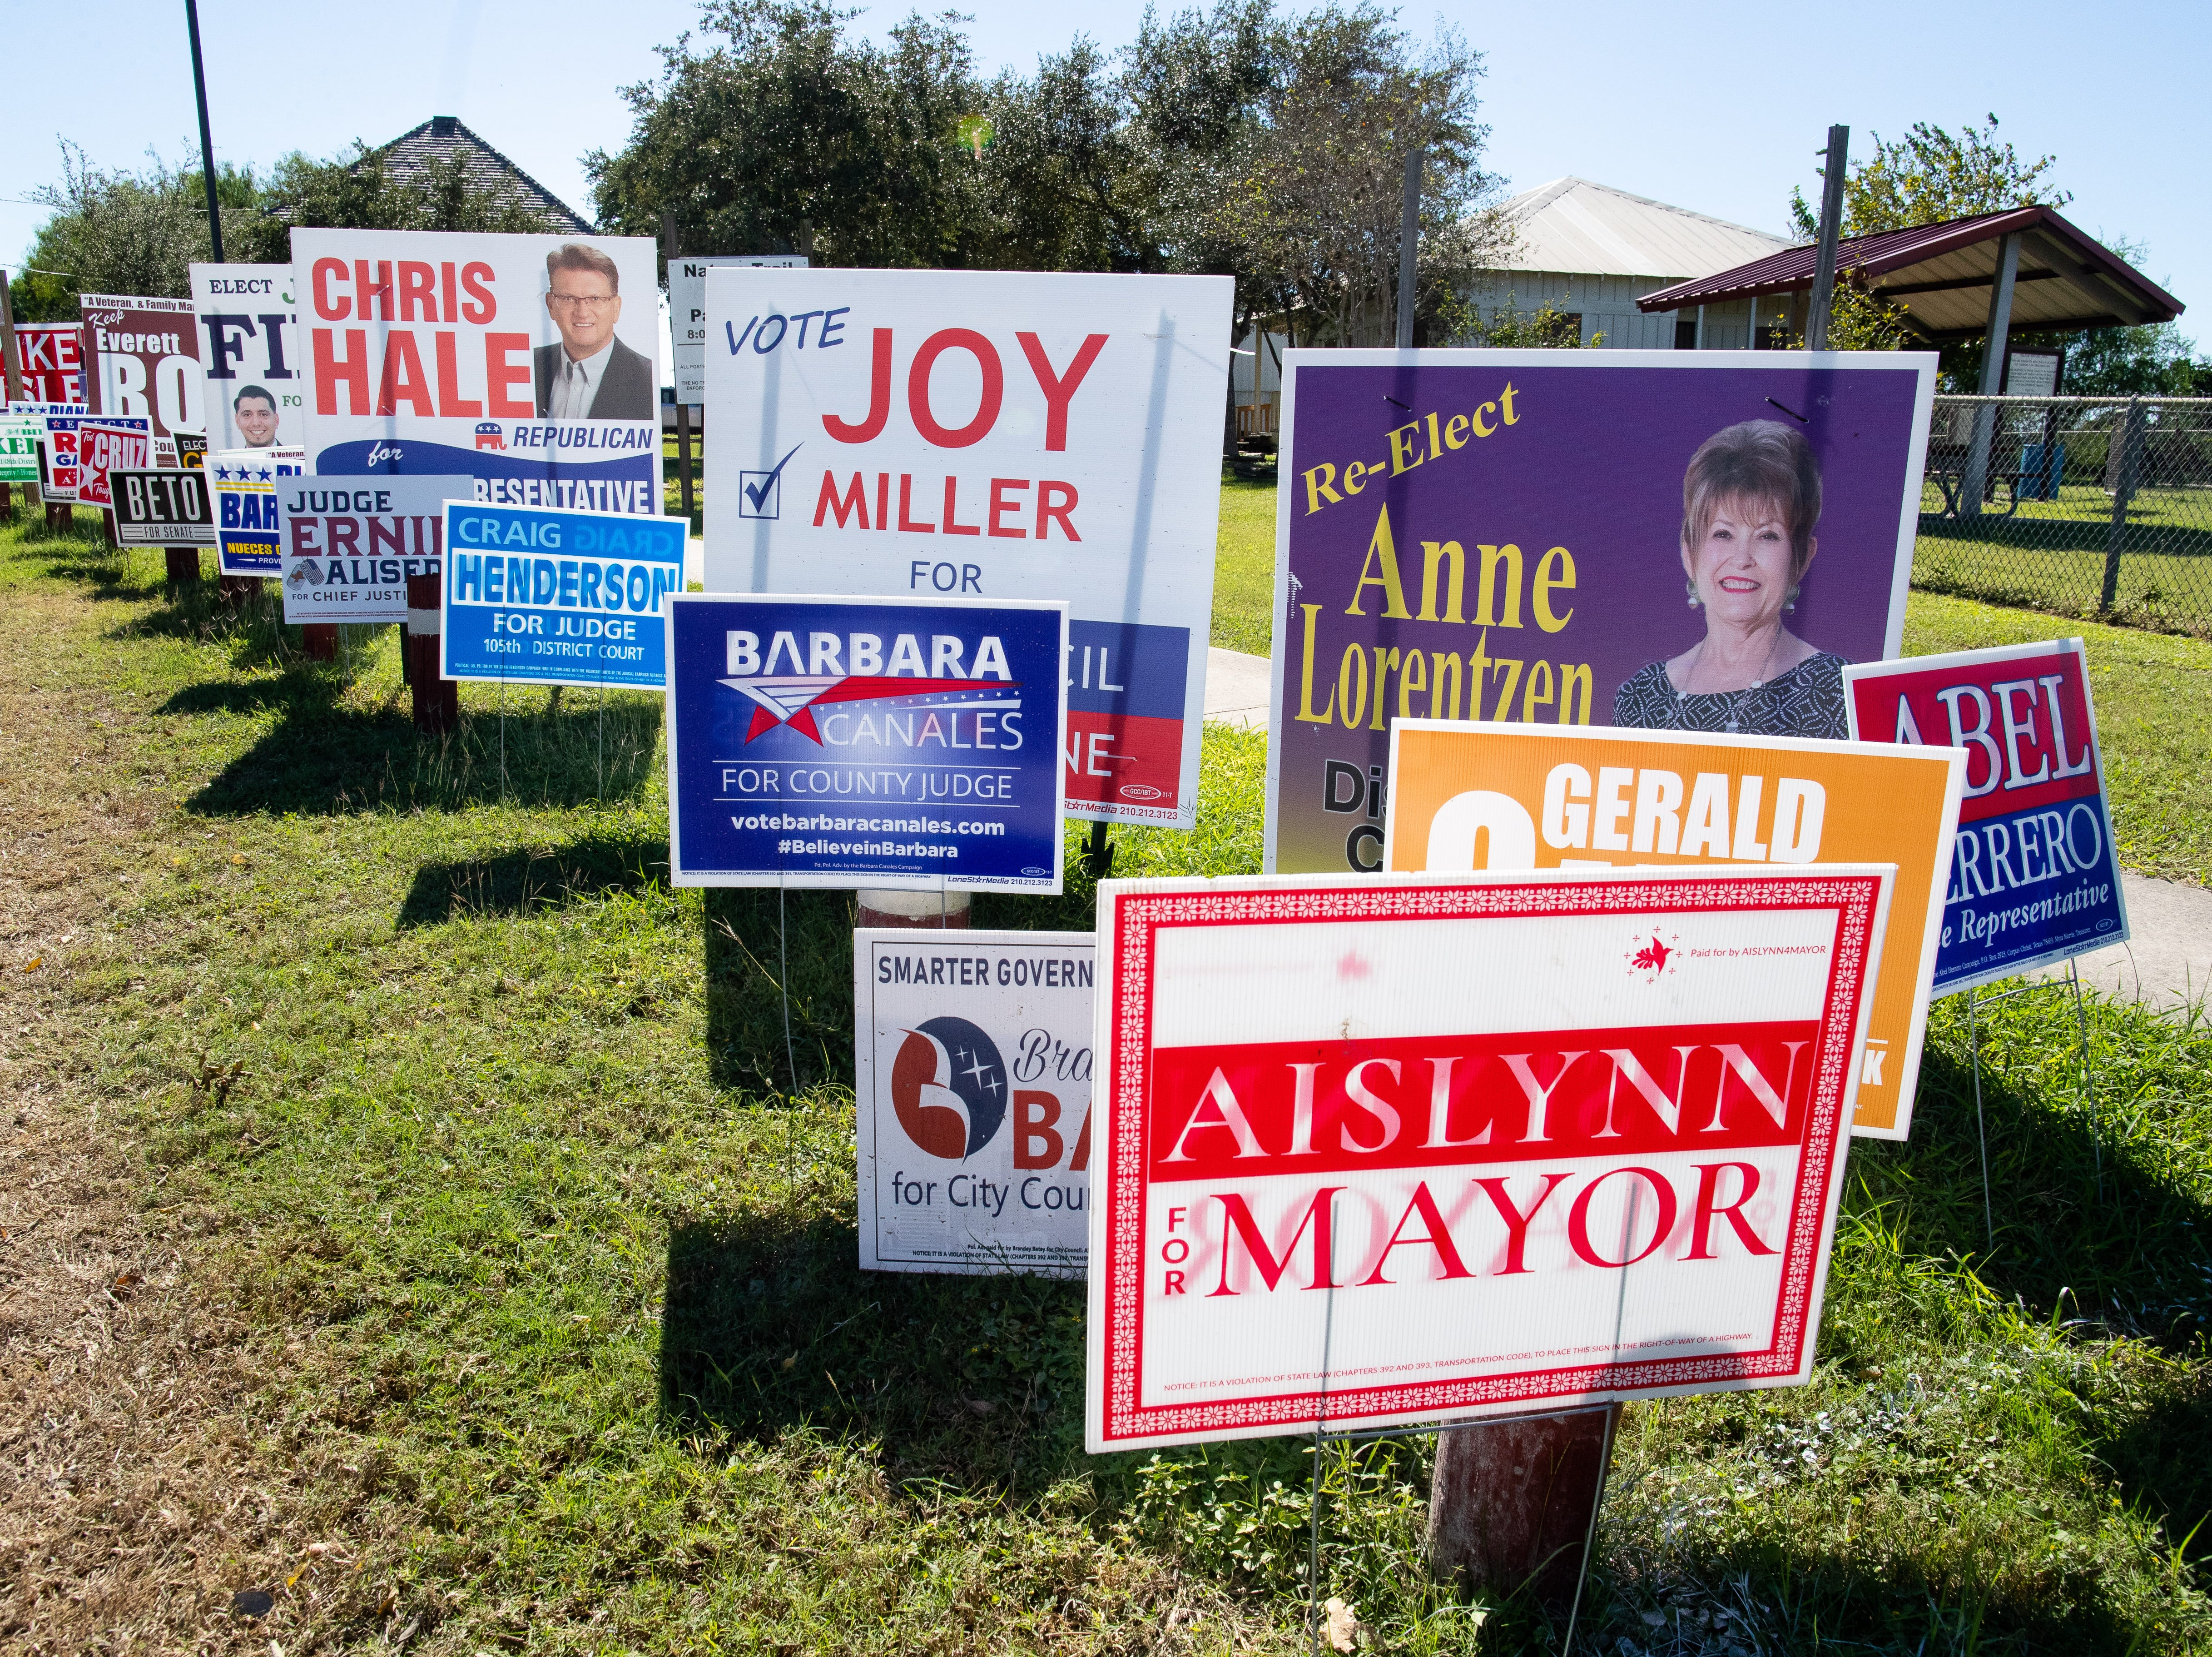 NICK JIMENEZ: Thinking about what political signs really signify